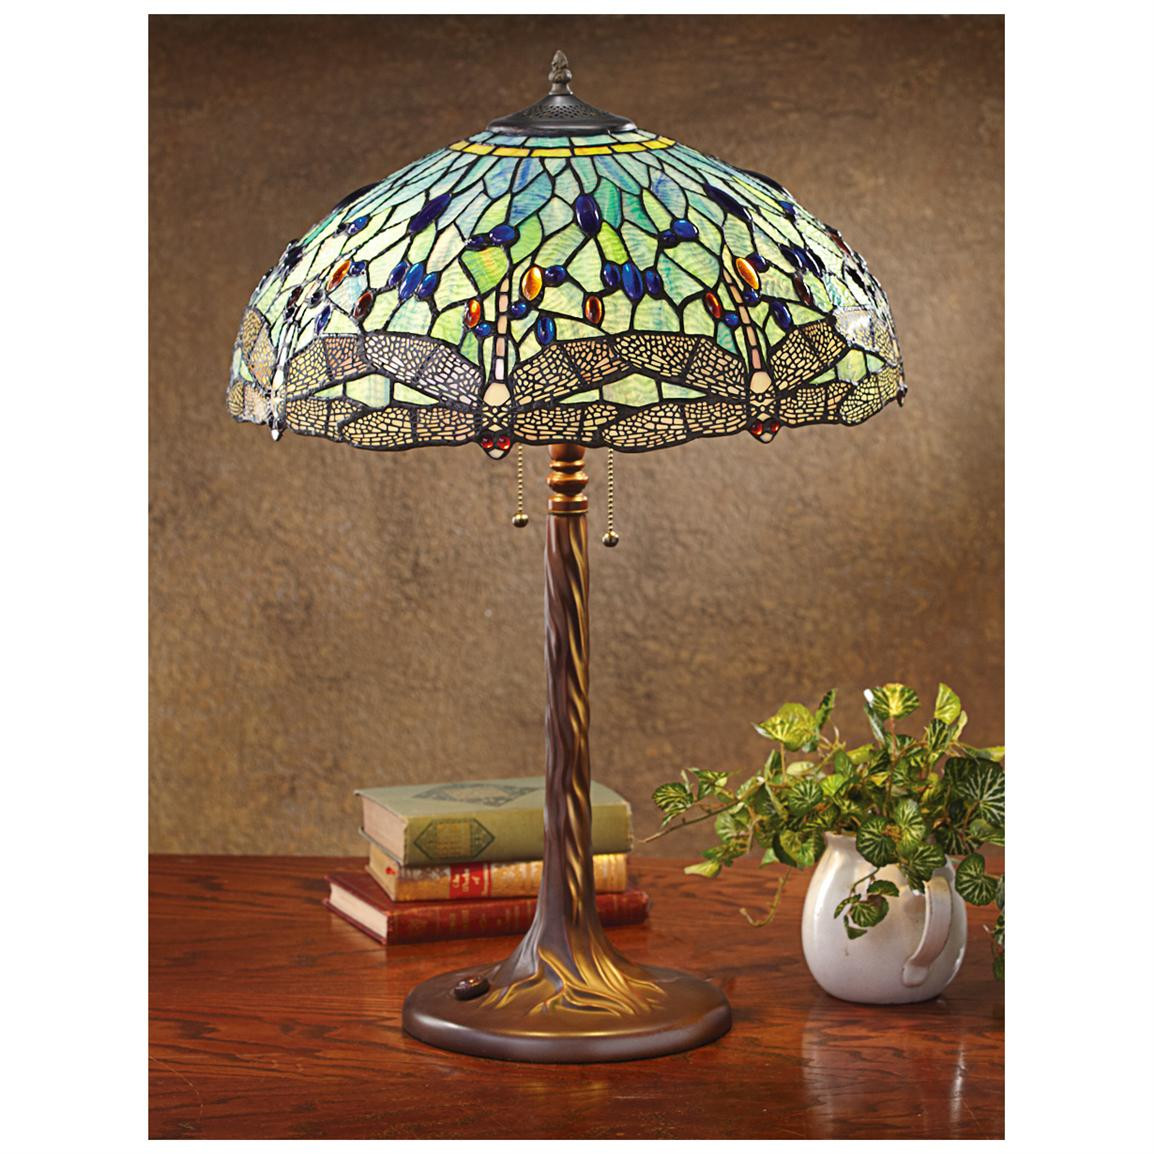 Best ideas about Tiffany Style Desk Lamp . Save or Pin Dragonfly Tiffany style Table Lamp Lighting at Now.